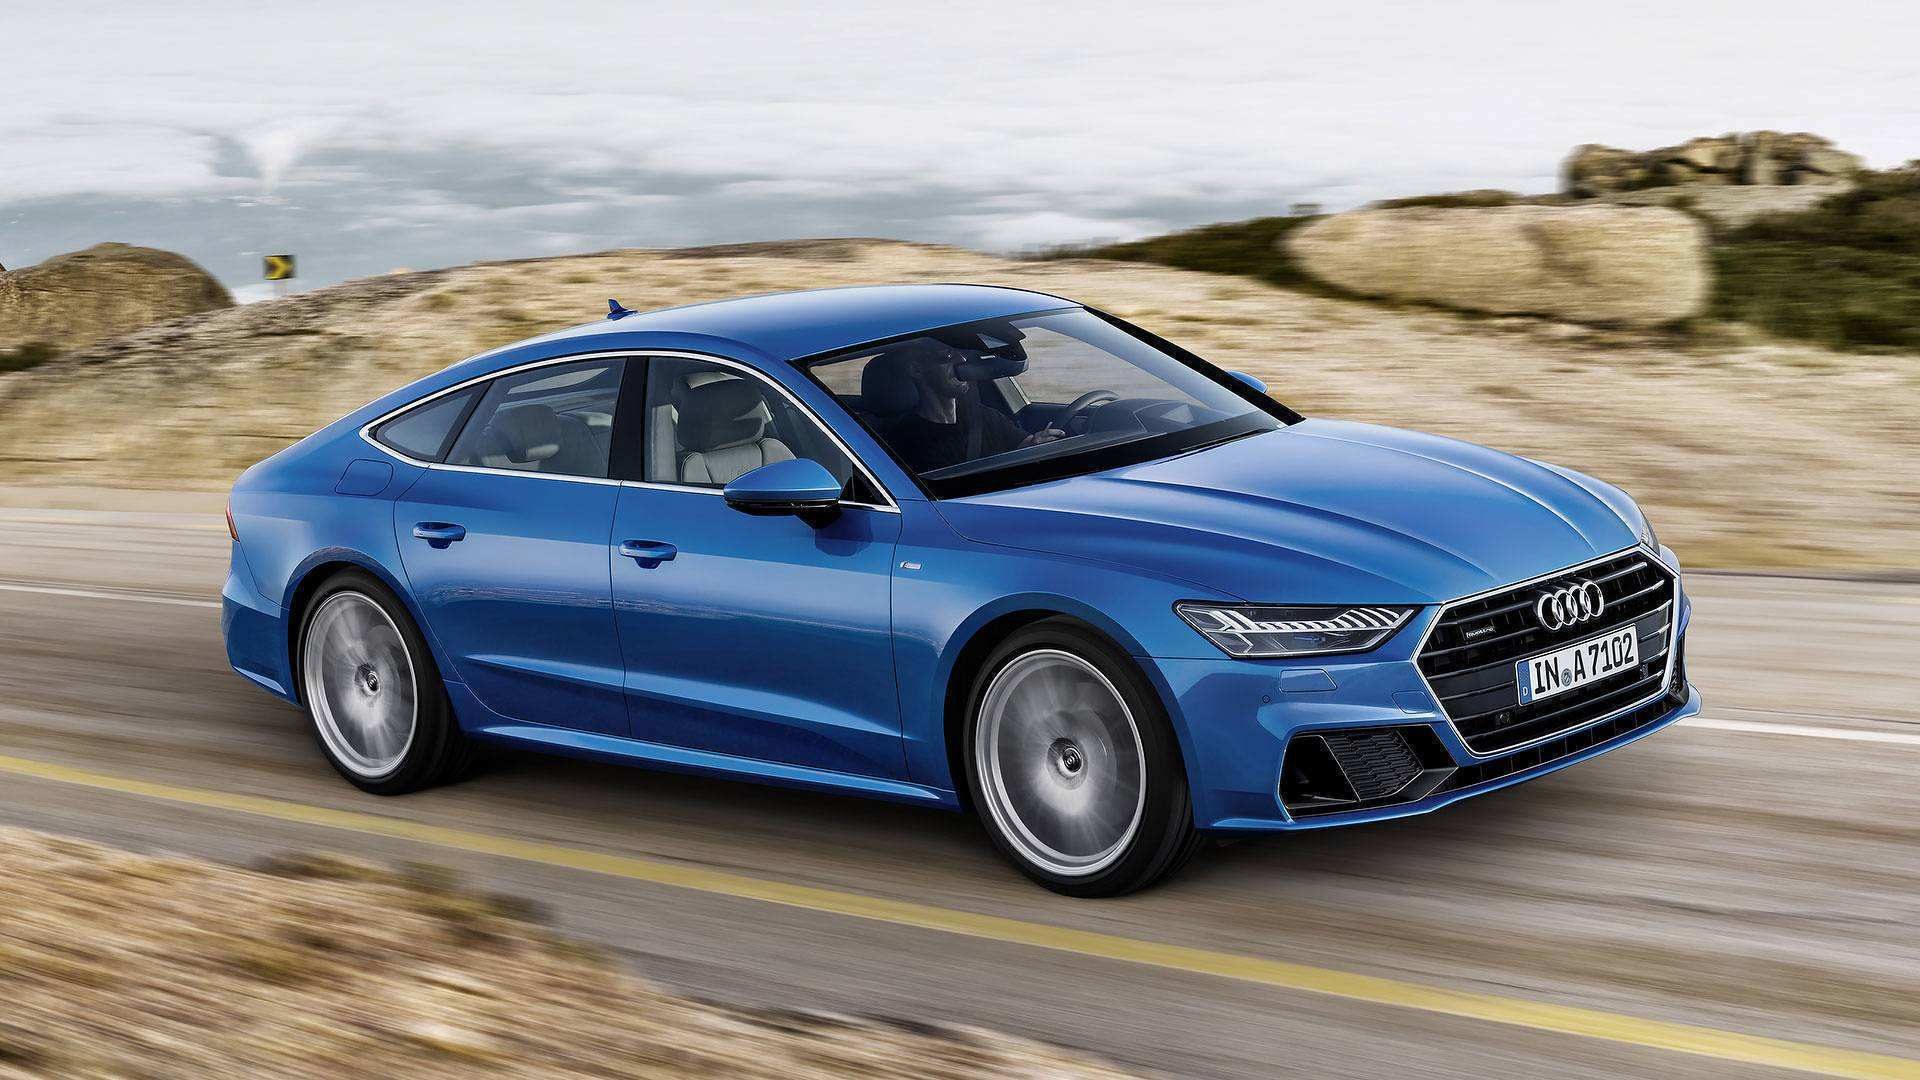 35 New 2019 Audi A7 Colors Review And Release Date